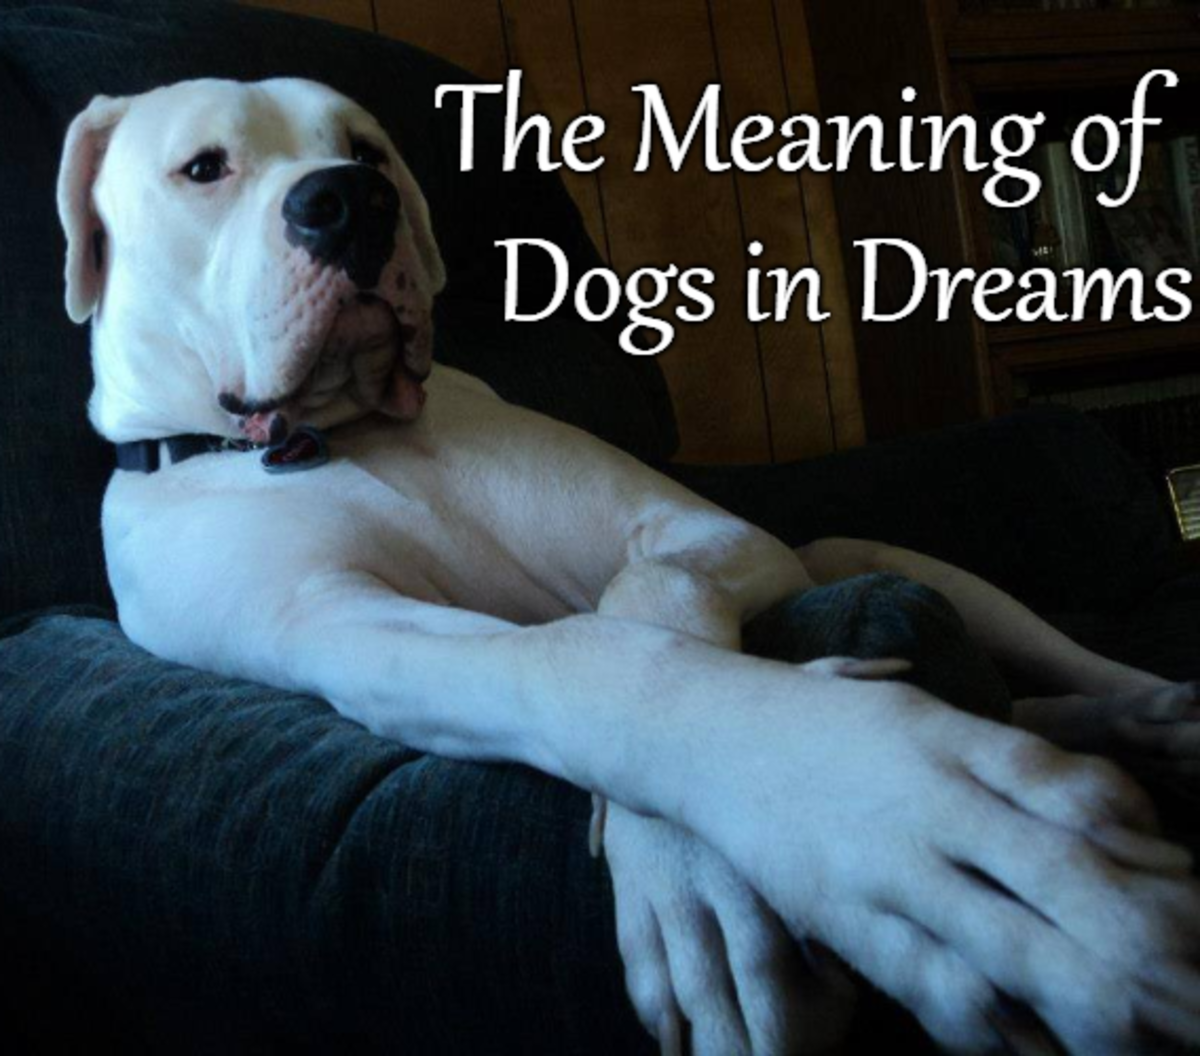 What Dogs Symbolize in Dreams and How to Interpret the Meaning